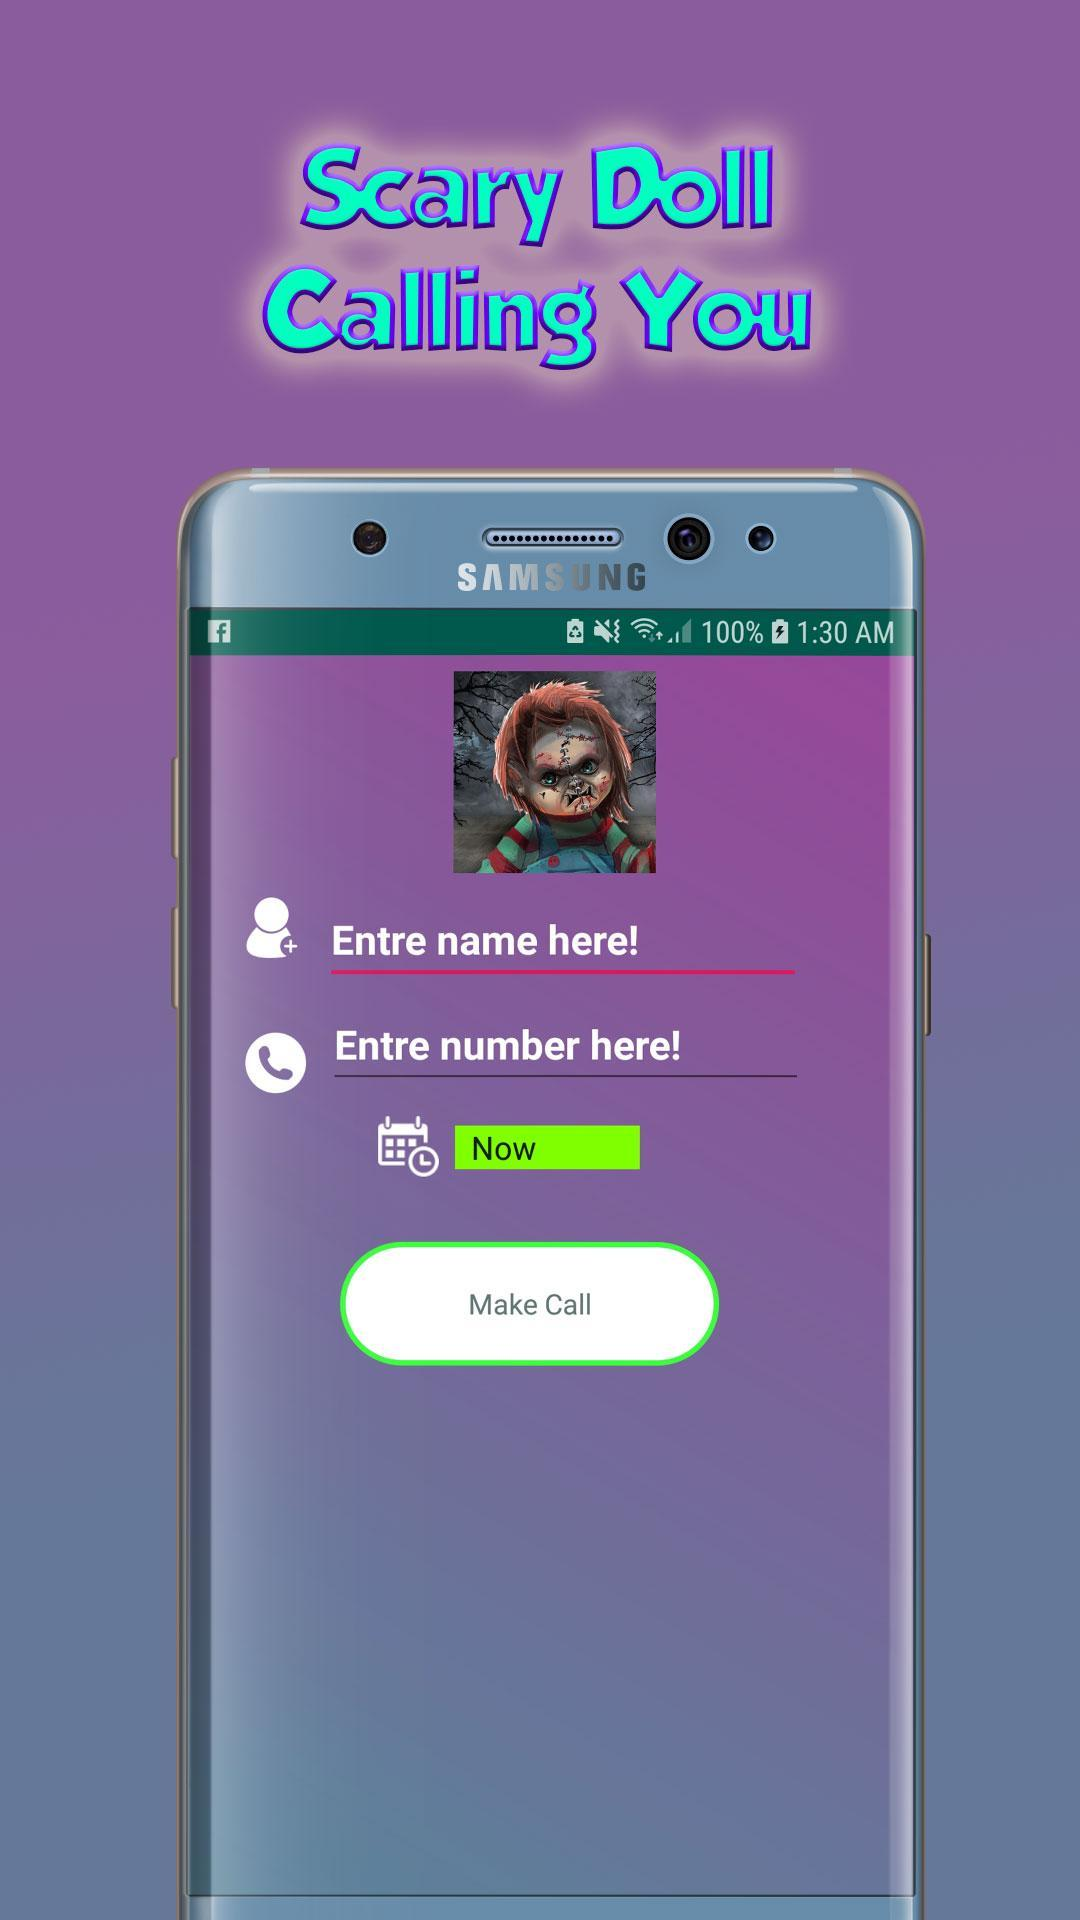 Scary Doll Calling You - Free Fake Phone Call 2019 for Android - APK